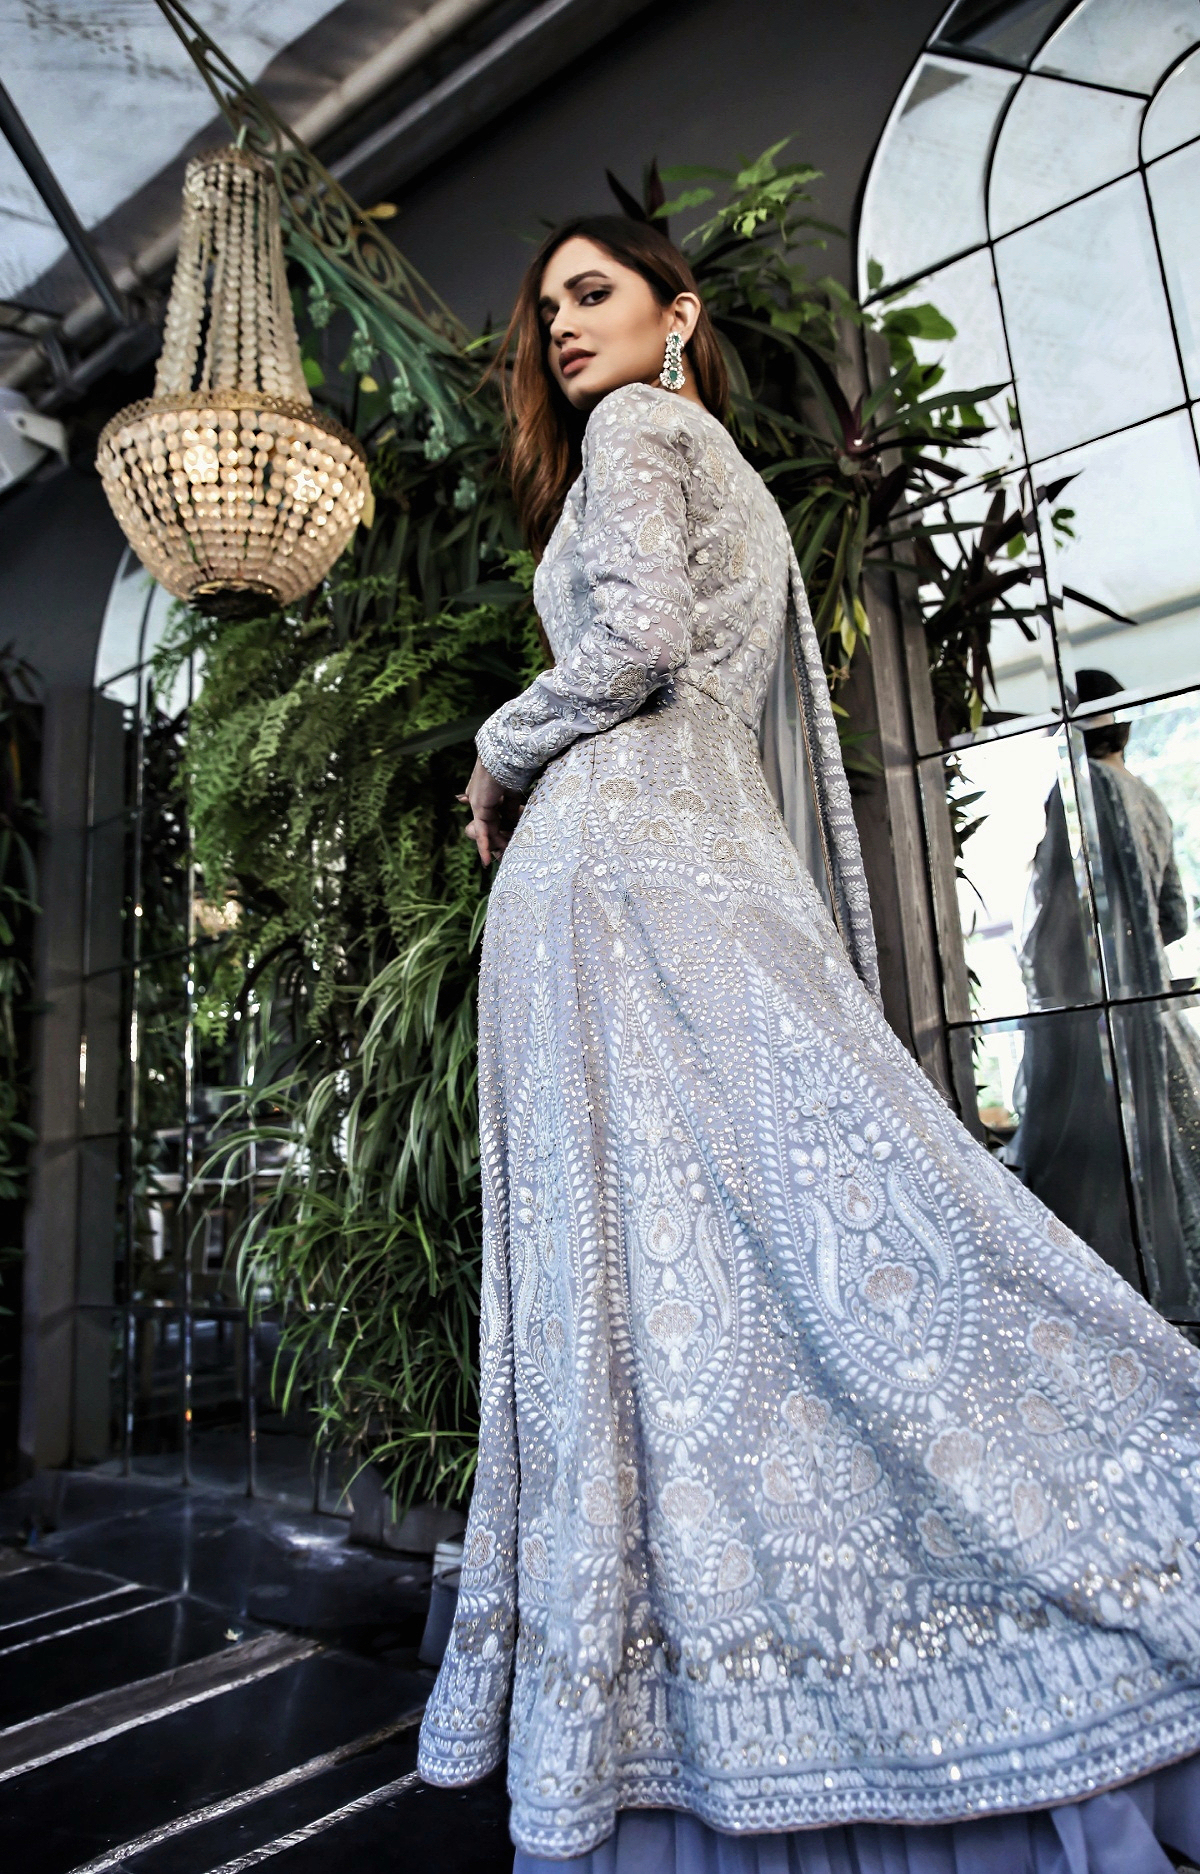 the-chic-armoire-nidhi-kunder-pernias-pop-up-shop-11